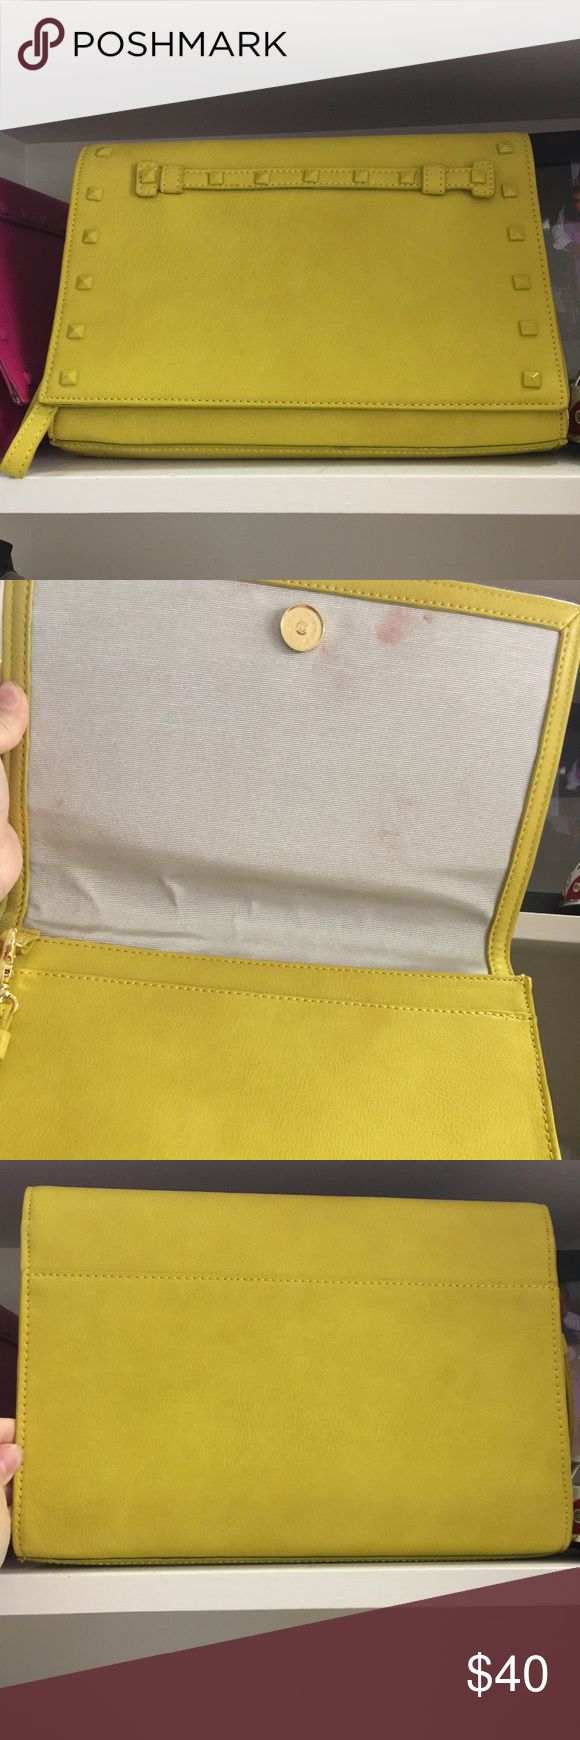 Yellow studded clutch Very similar to the rockstud Valentino clutch. Has some smears on the inside flap. Also selling the other two colors Bags Clutches & Wristlets